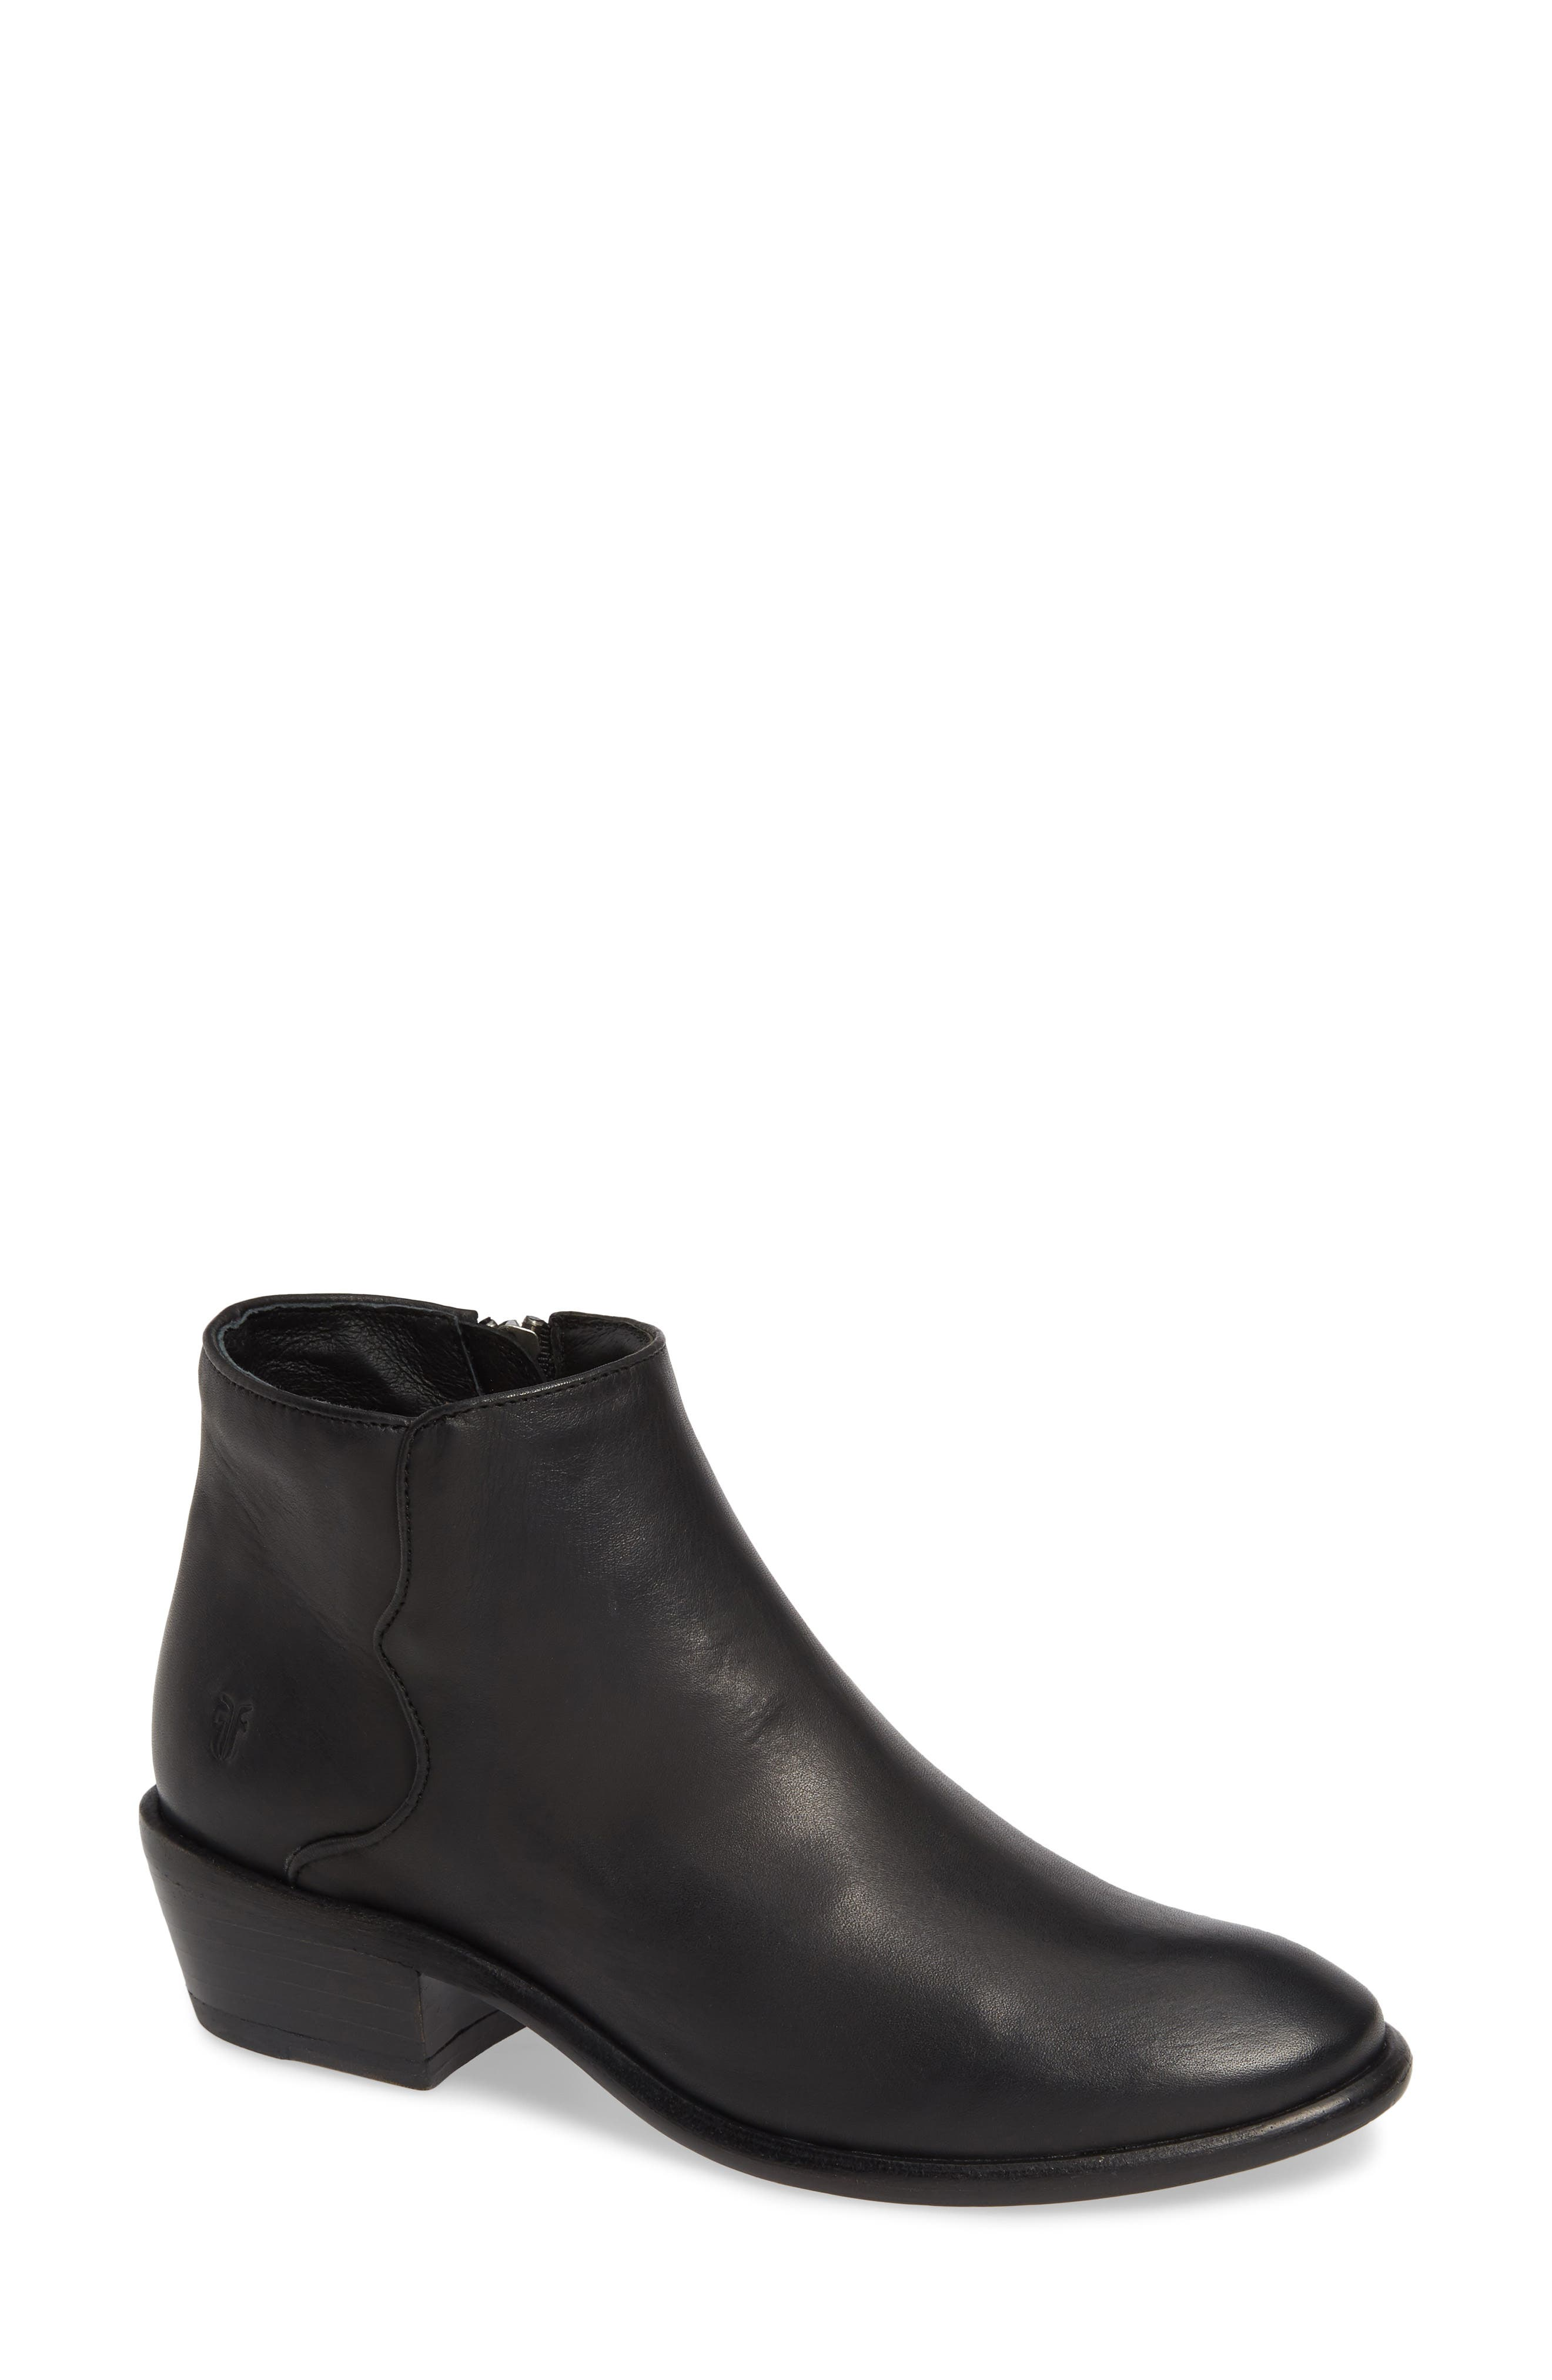 Frye Carson Piping Bootie, Black